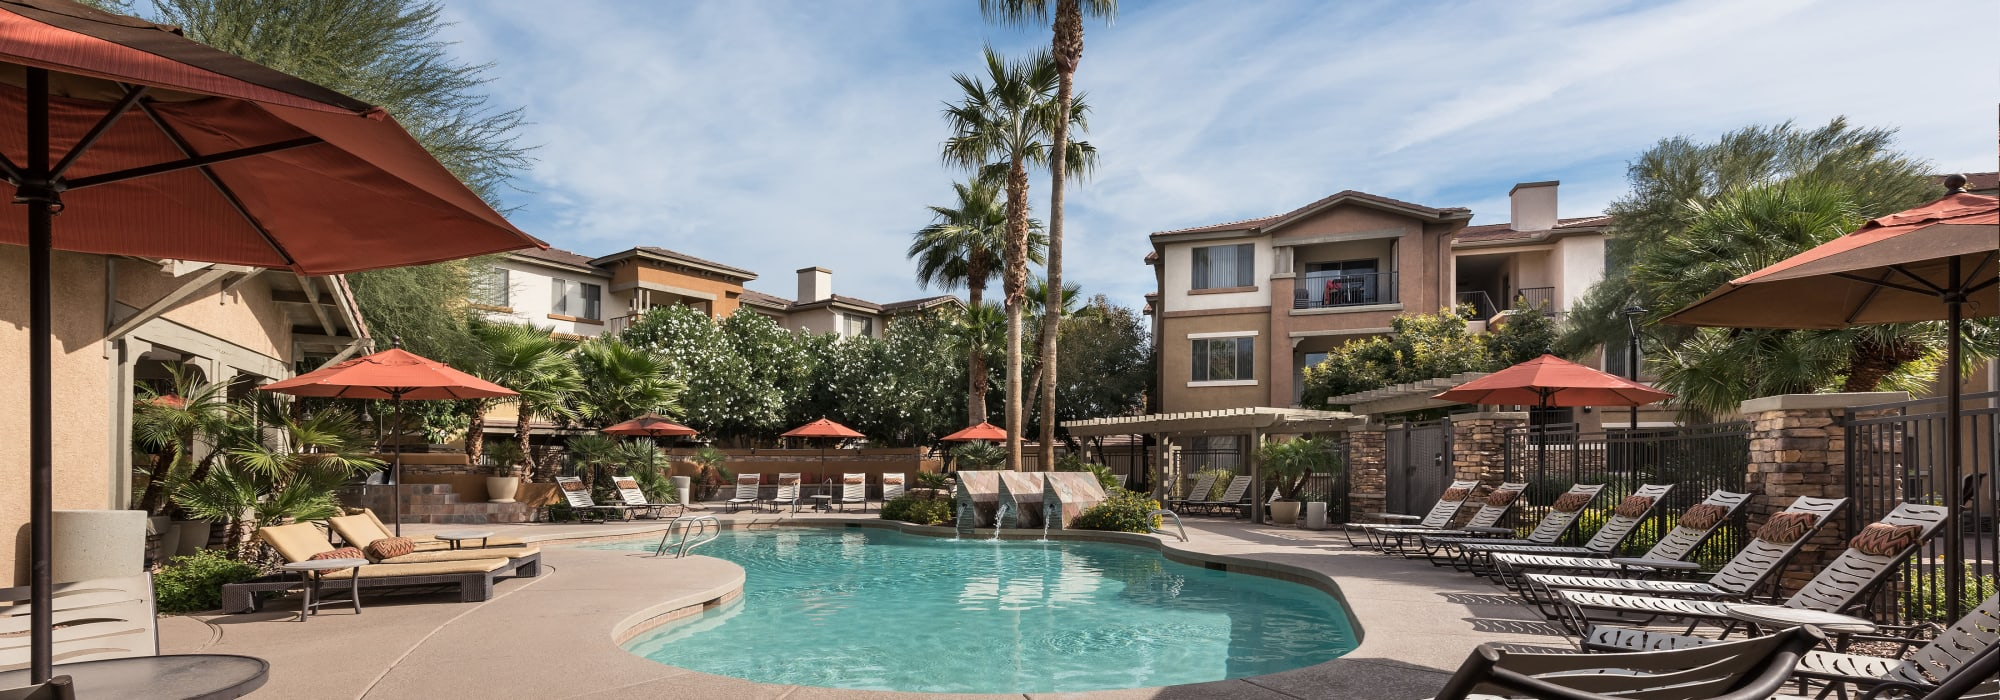 Poolside lounger chairs at Borrego at Spectrum in Gilbert, Arizona